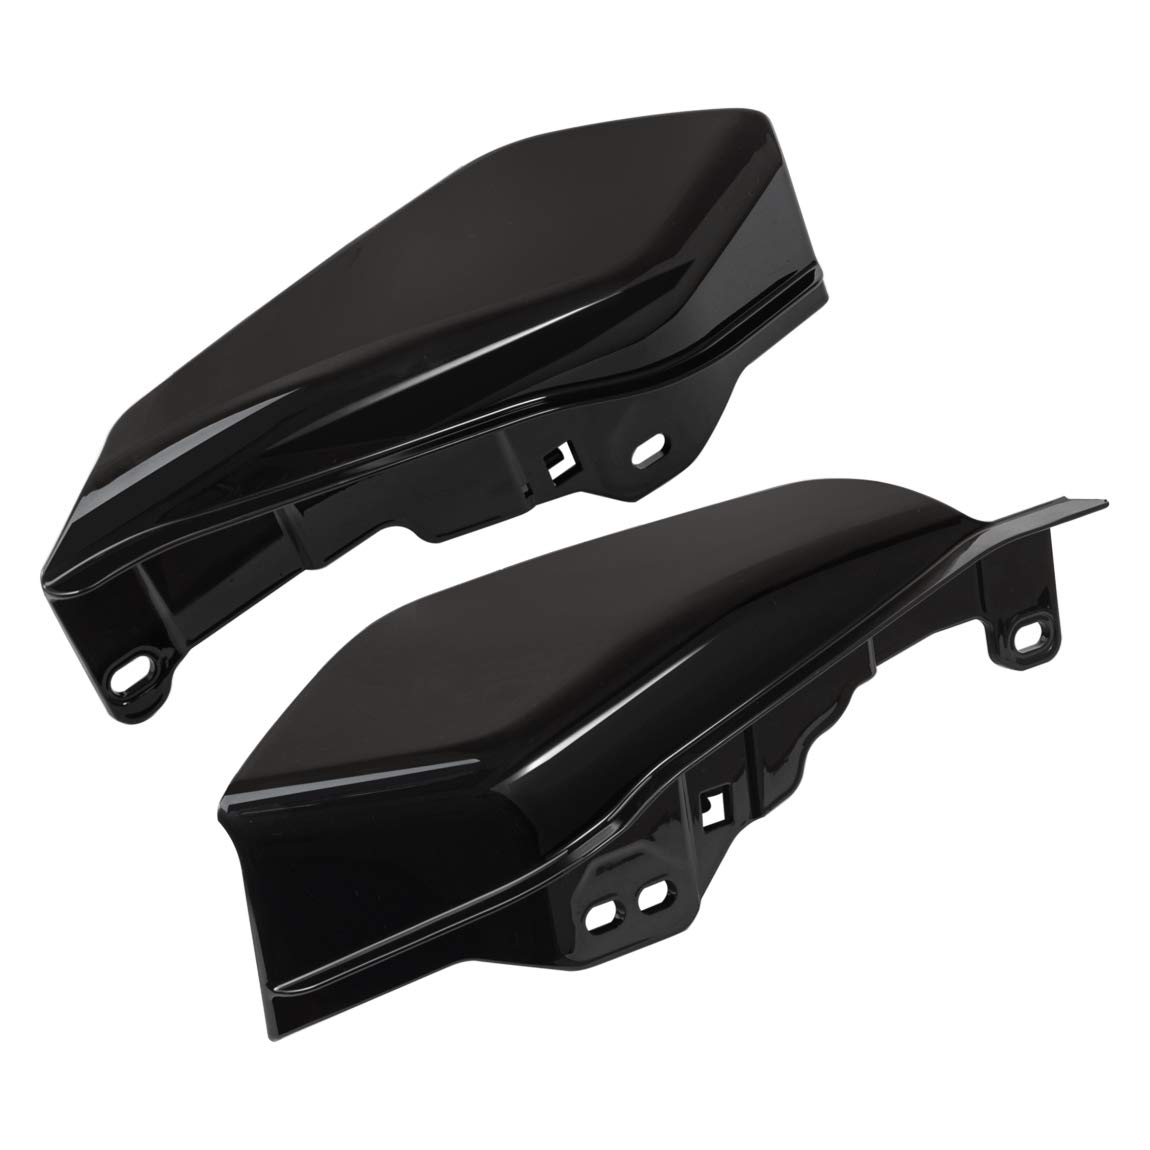 PBYMT Black Mid Frame Air Deflector Compatible for Harley Trike Touring Road King Street Glide 2017-2019